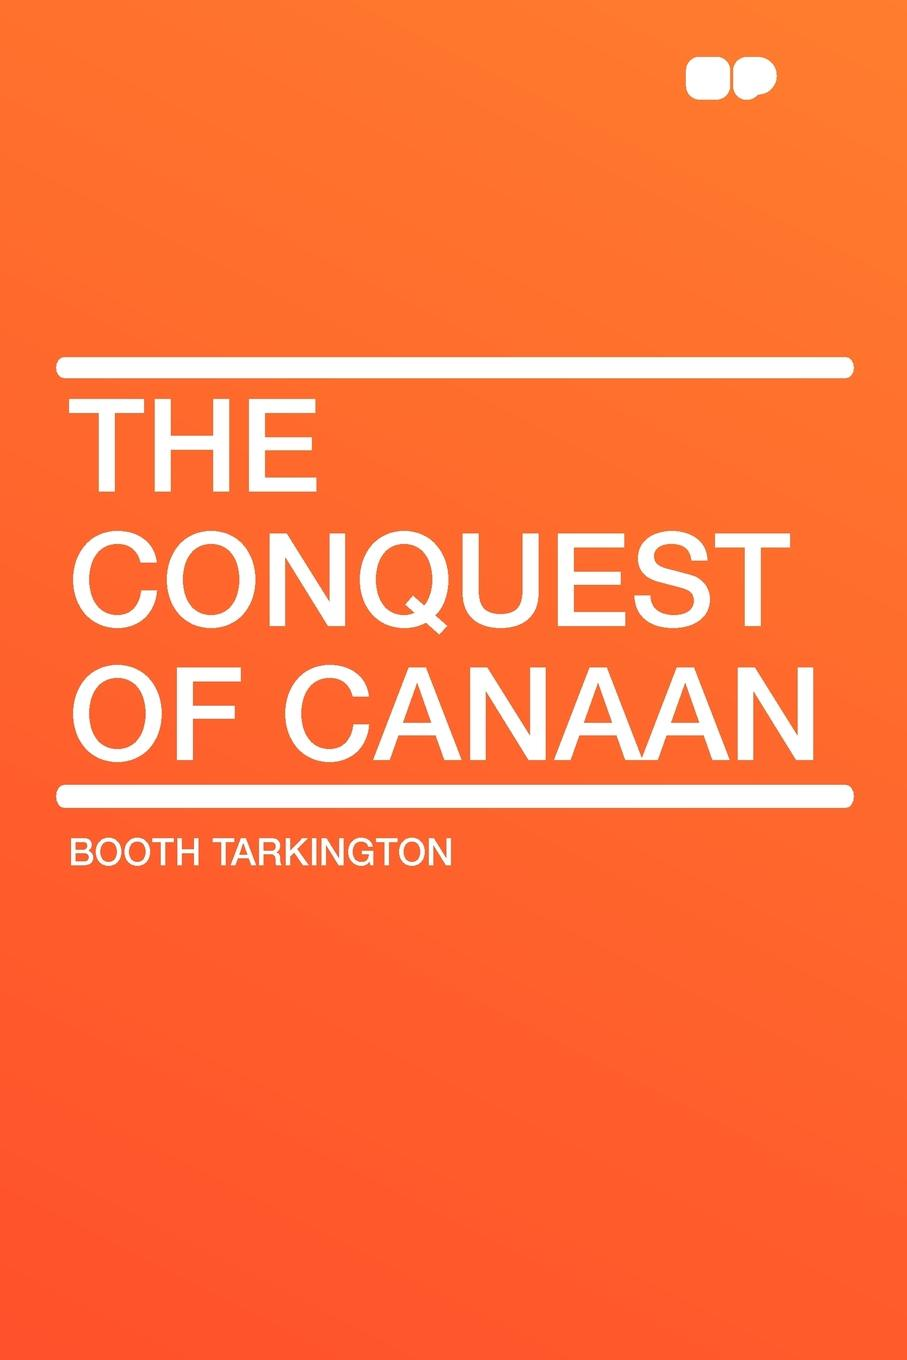 Booth Tarkington The Conquest of Canaan conquest магазин часов